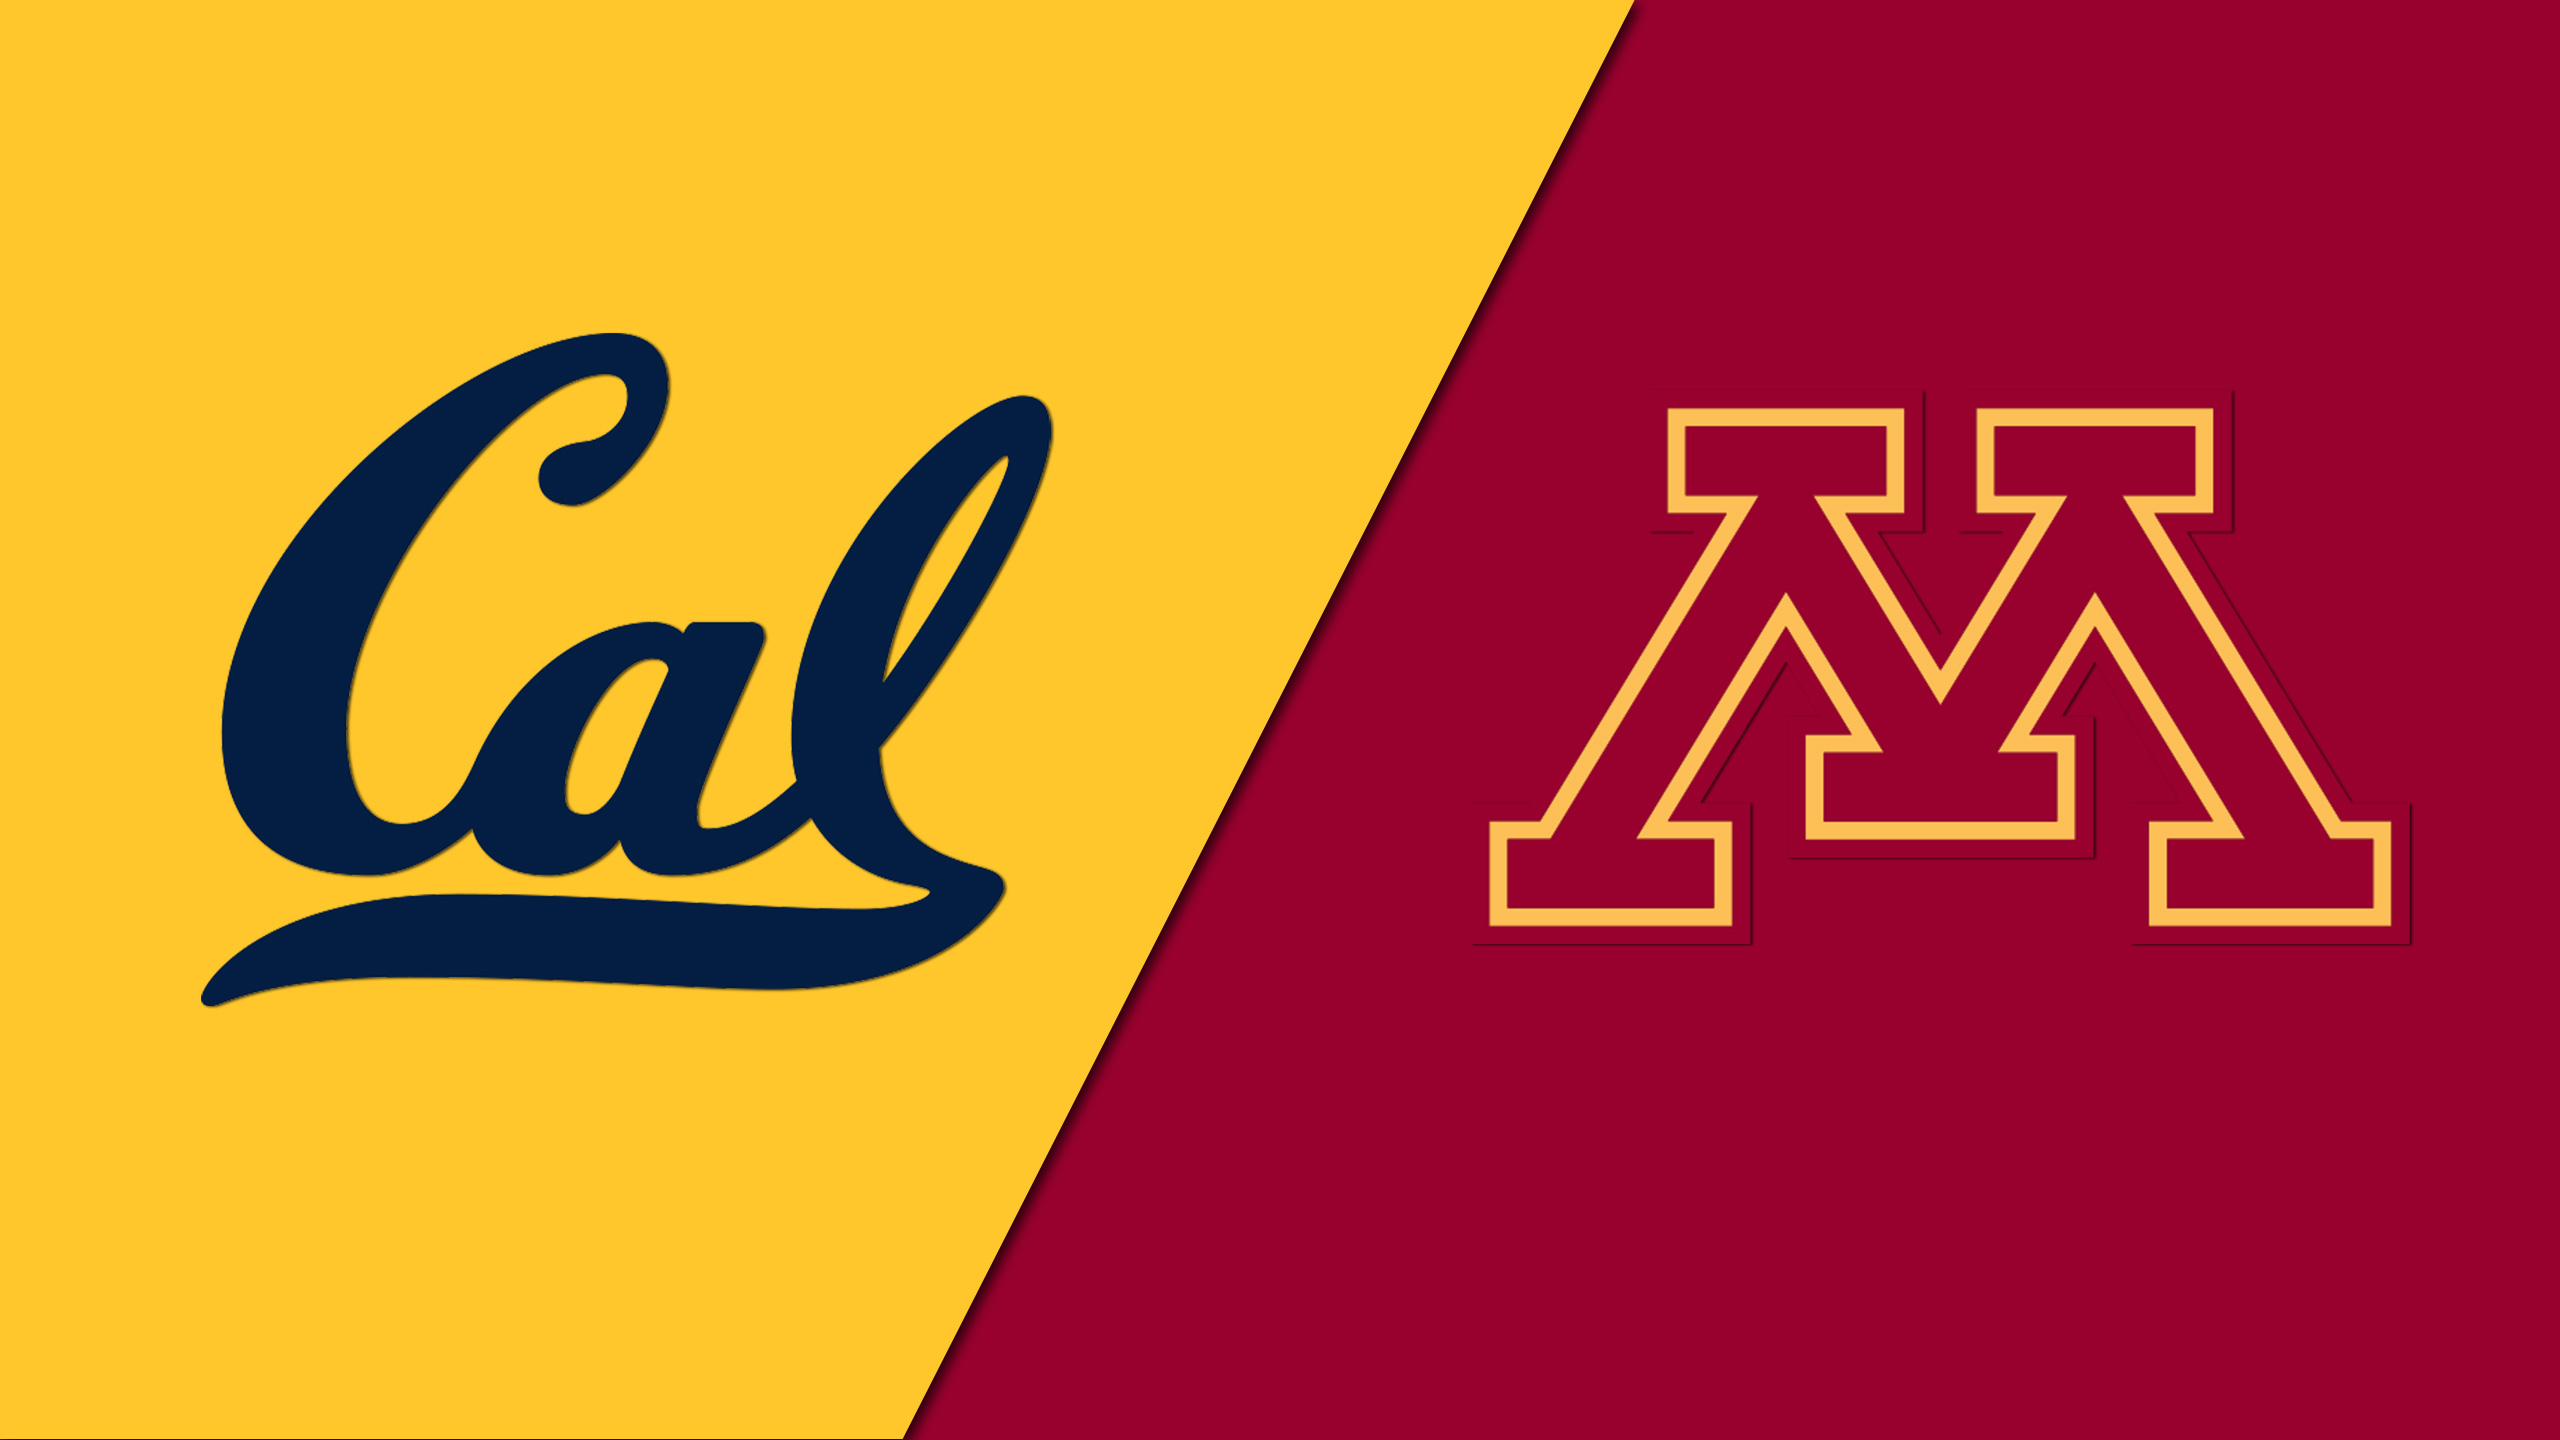 California vs. Minnesota (Softball)